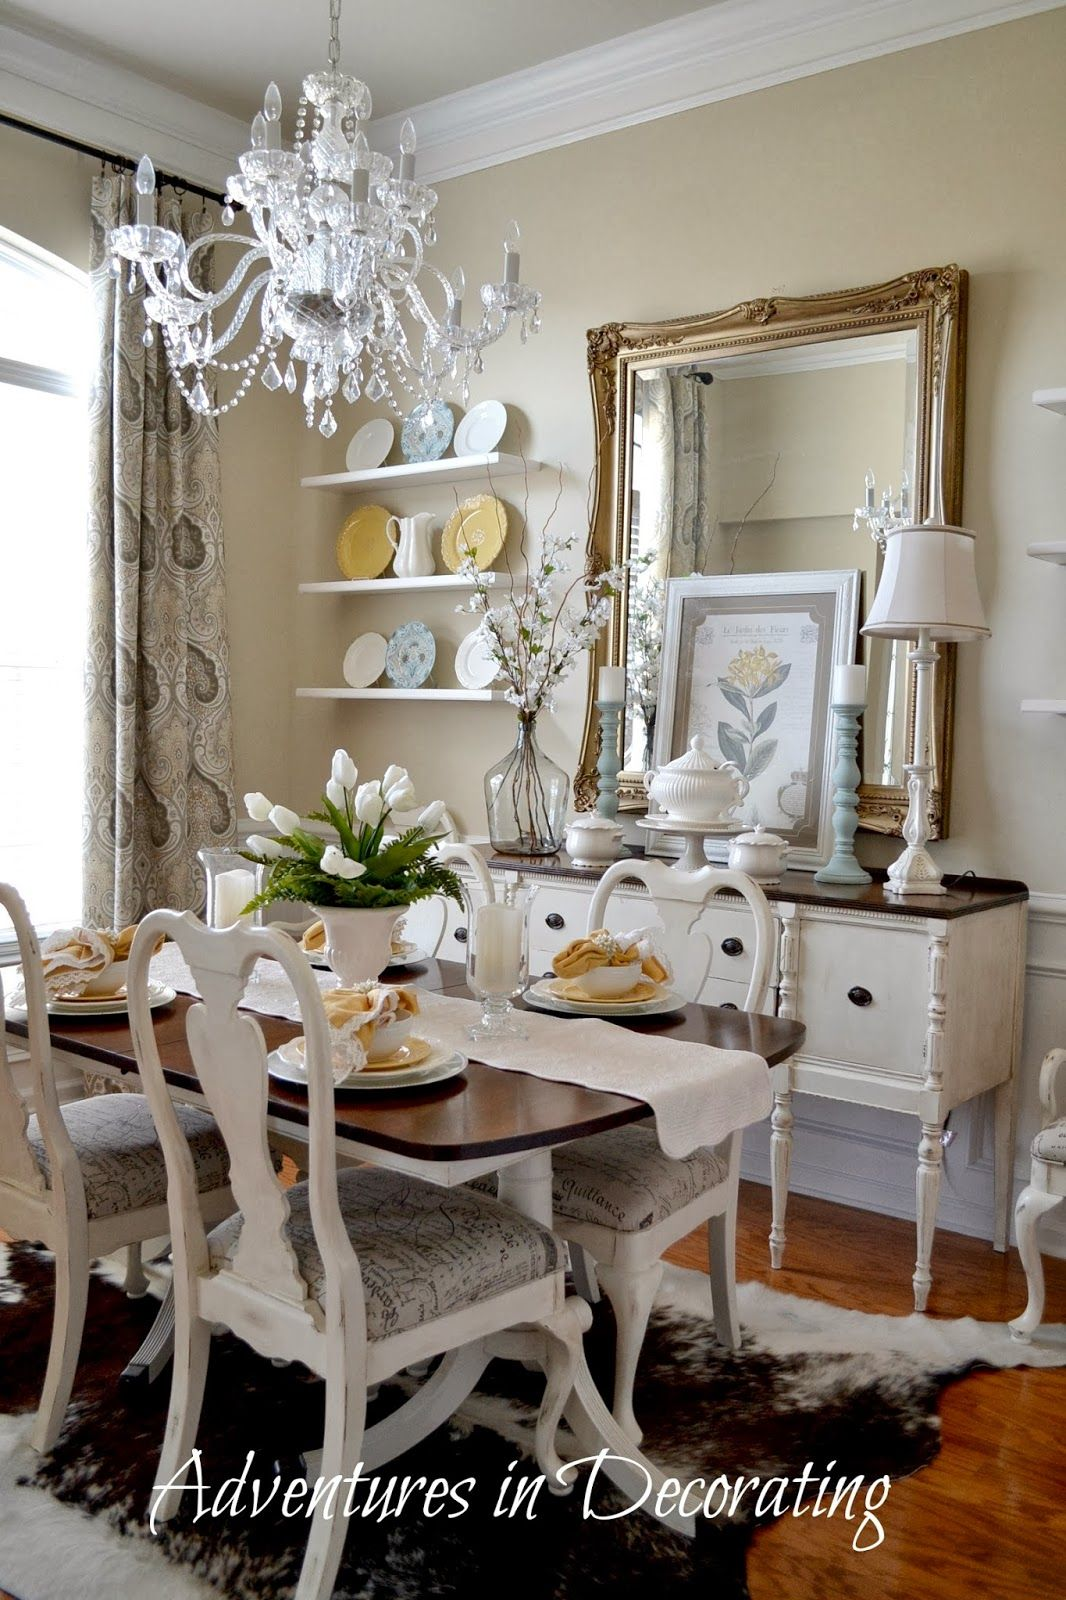 Adventures In Decorating Our 2015 Fall Kitchen: Adventures In Decorating: Our Refreshed Dining Room